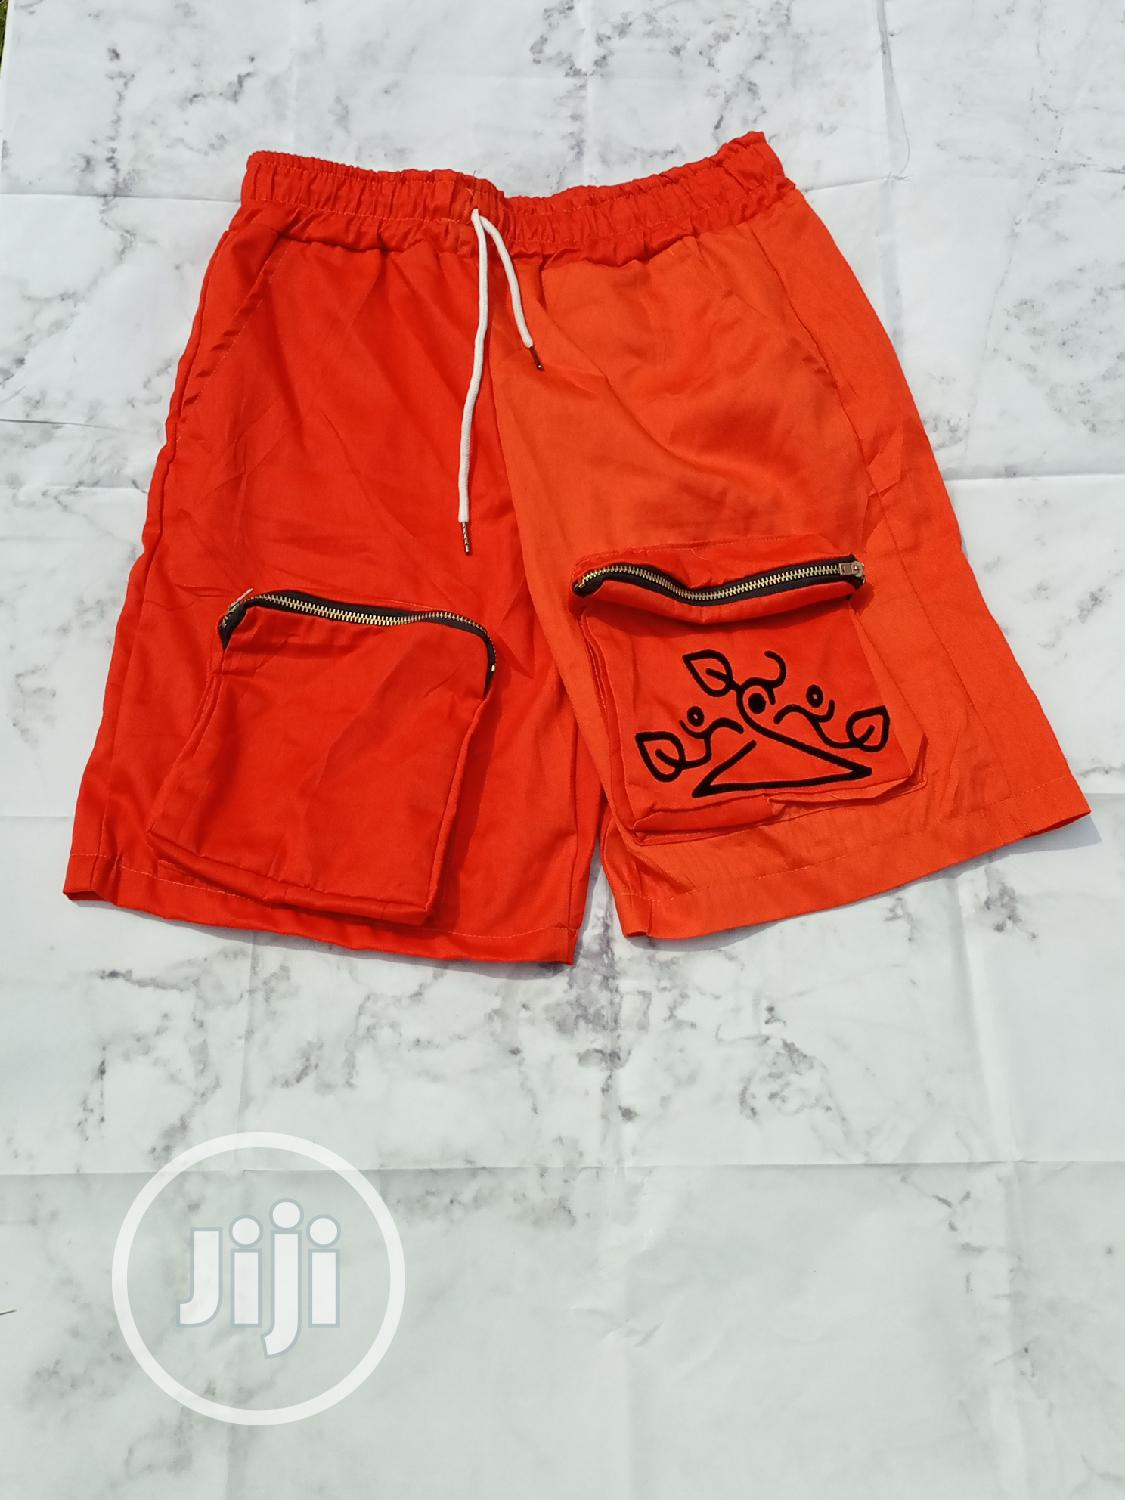 Oui Couture Shorts